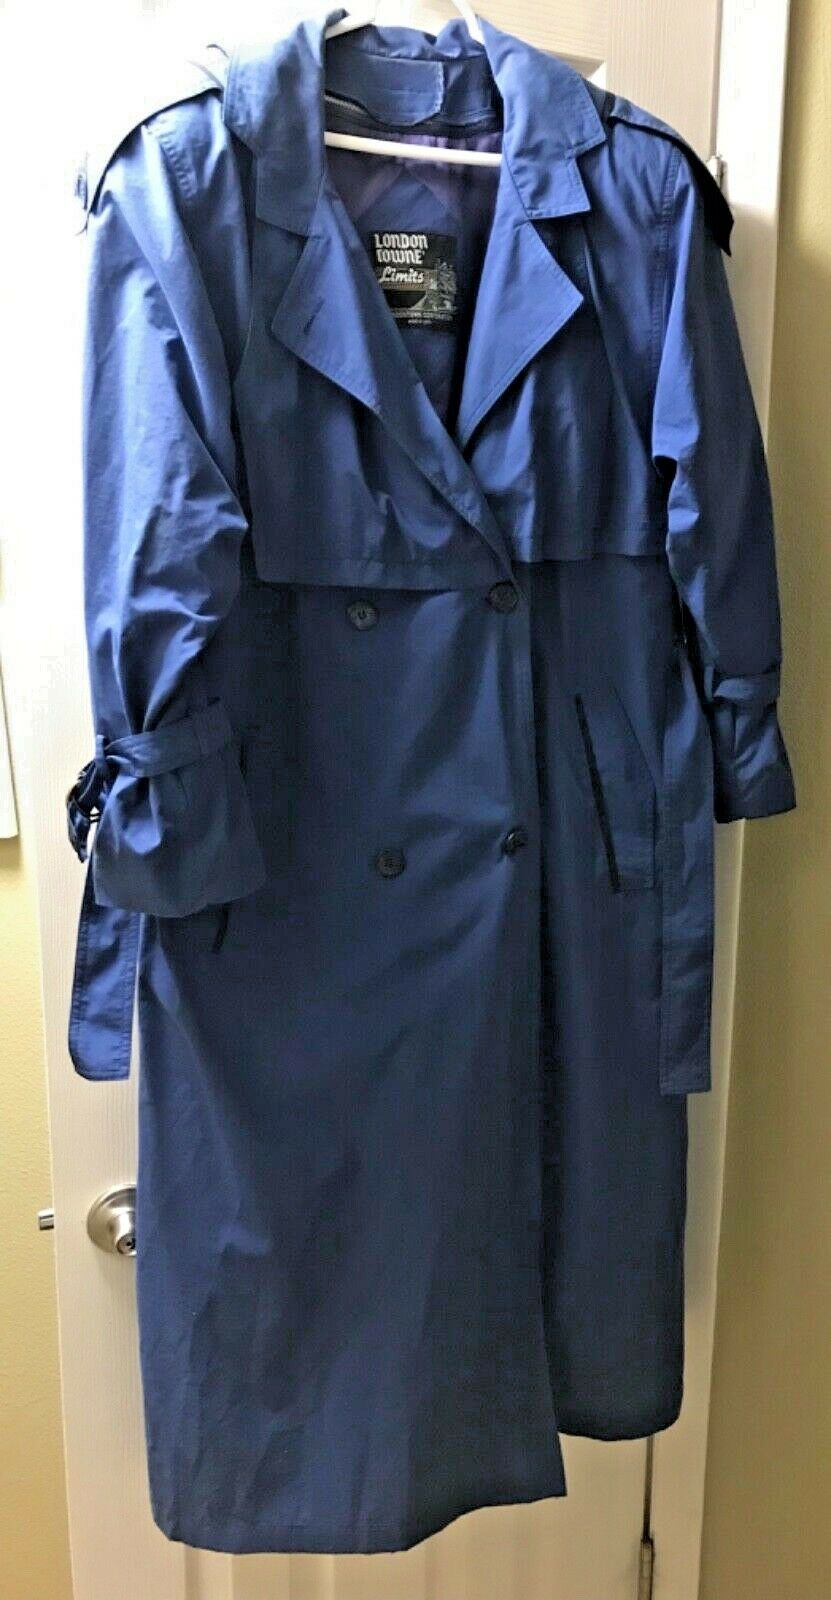 LONDON TOWNE bluee WOMENS Rain All Weather TRENCH COAT Zippered Lining SIZE 10 R